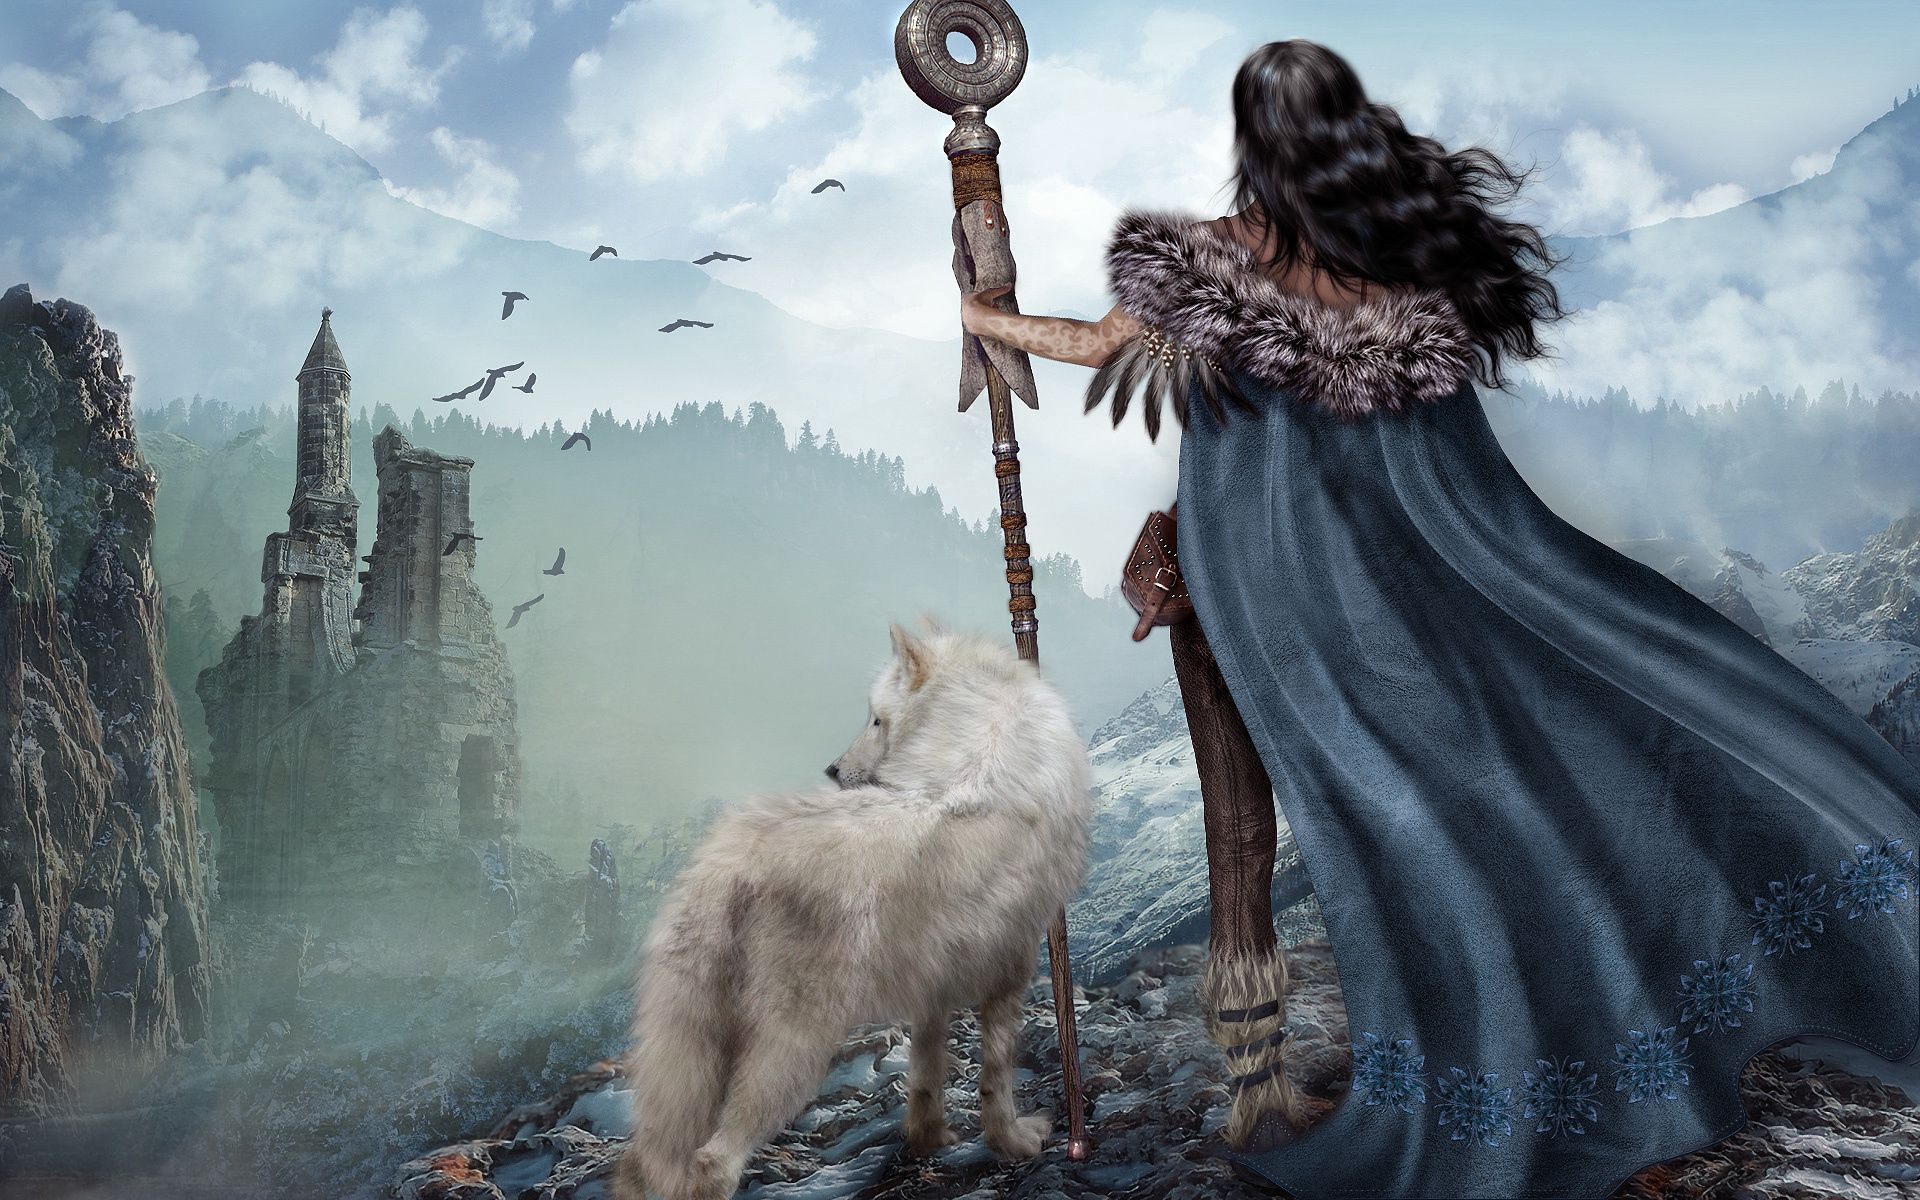 79826 download wallpaper Fantasy, Girl, Warrior, Wolf, Ruins, Mountains screensavers and pictures for free